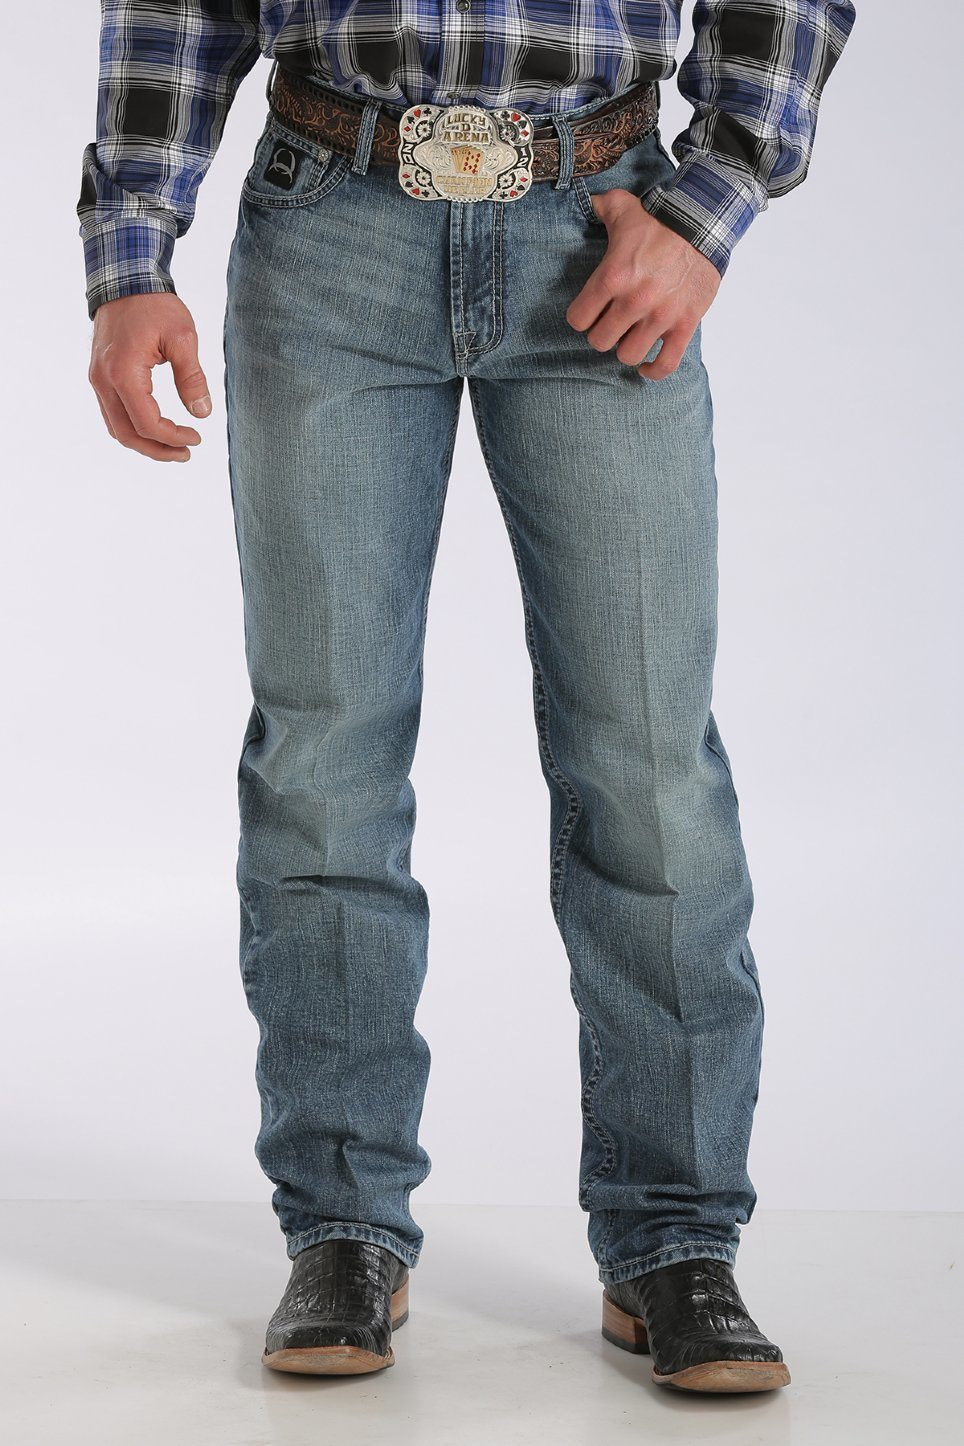 Calça Jeans Cinch Black Label 2.0 Importada Masculina